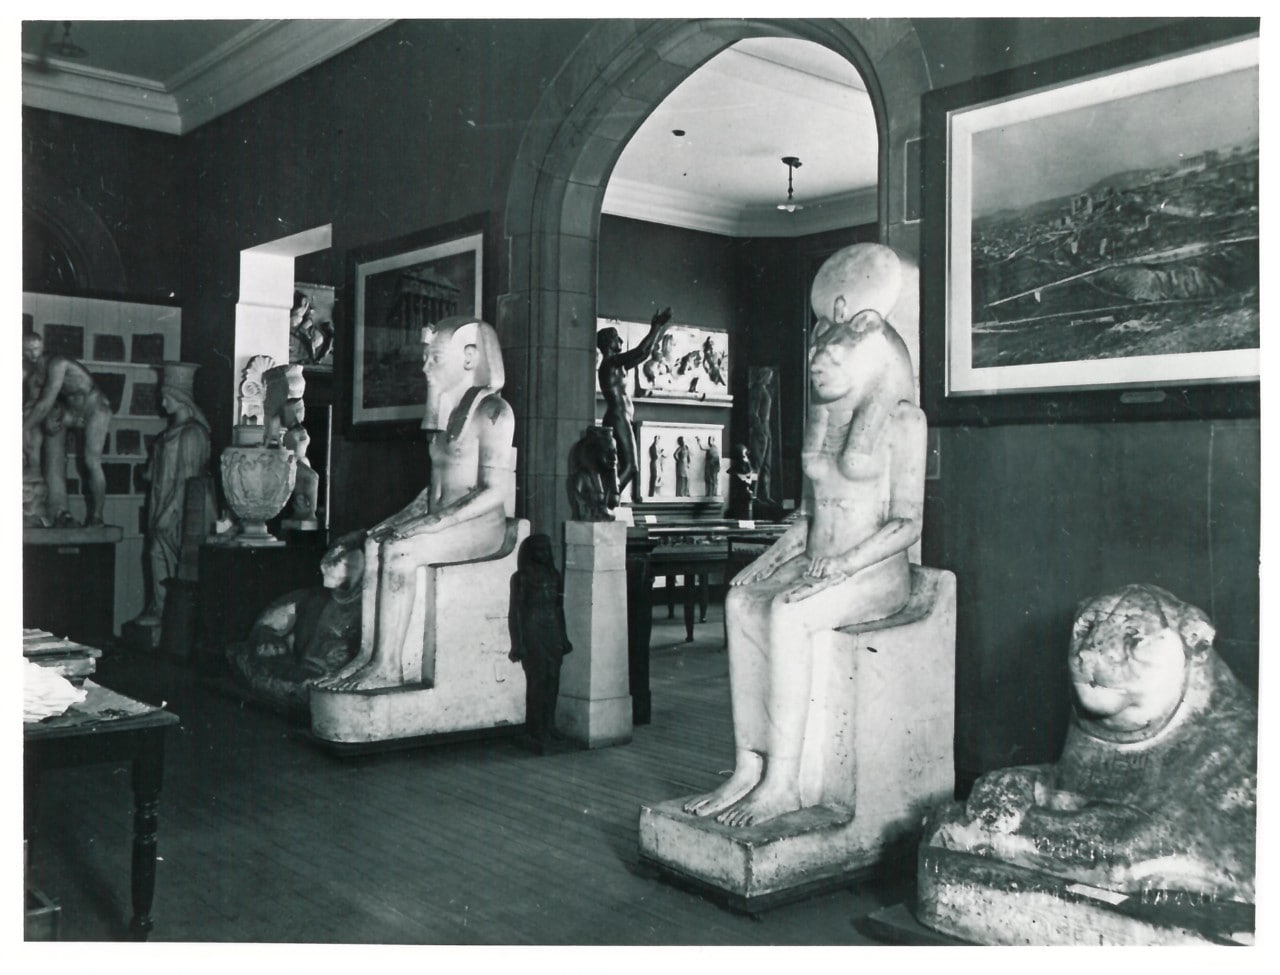 Nicholson Museum in the 1930s